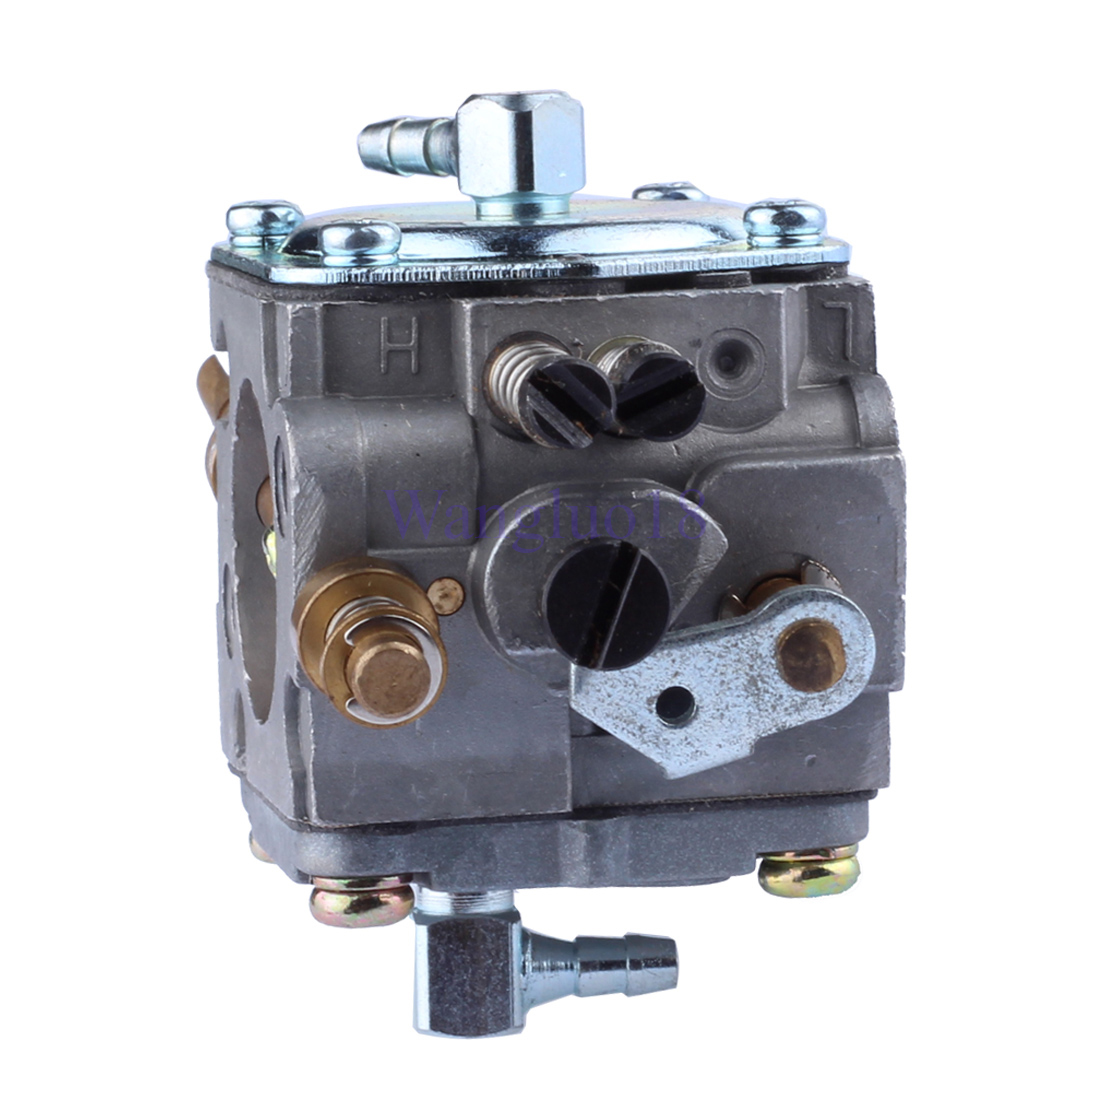 hight resolution of carburetor pre air fuel filter for stihl ts400 cut off saw rep 4223 120 0600